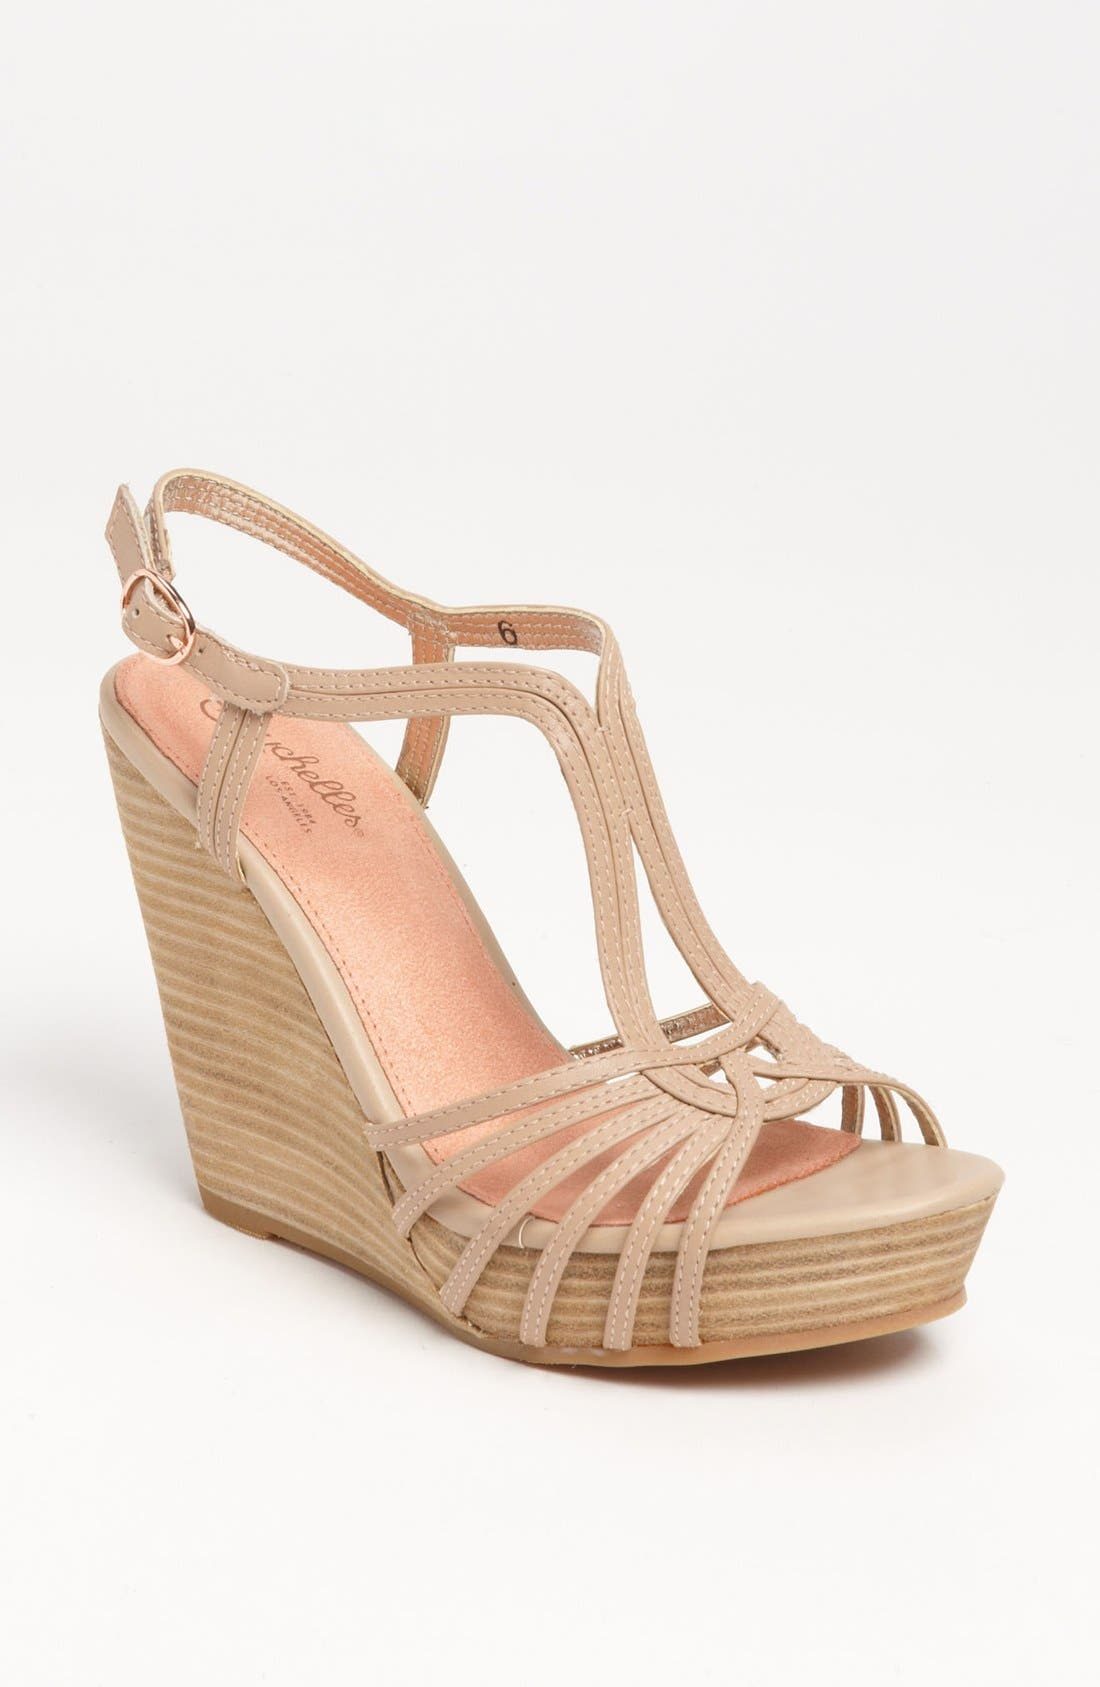 Alternate Image 1 Selected - Seychelles 'Gale Force' Sandal